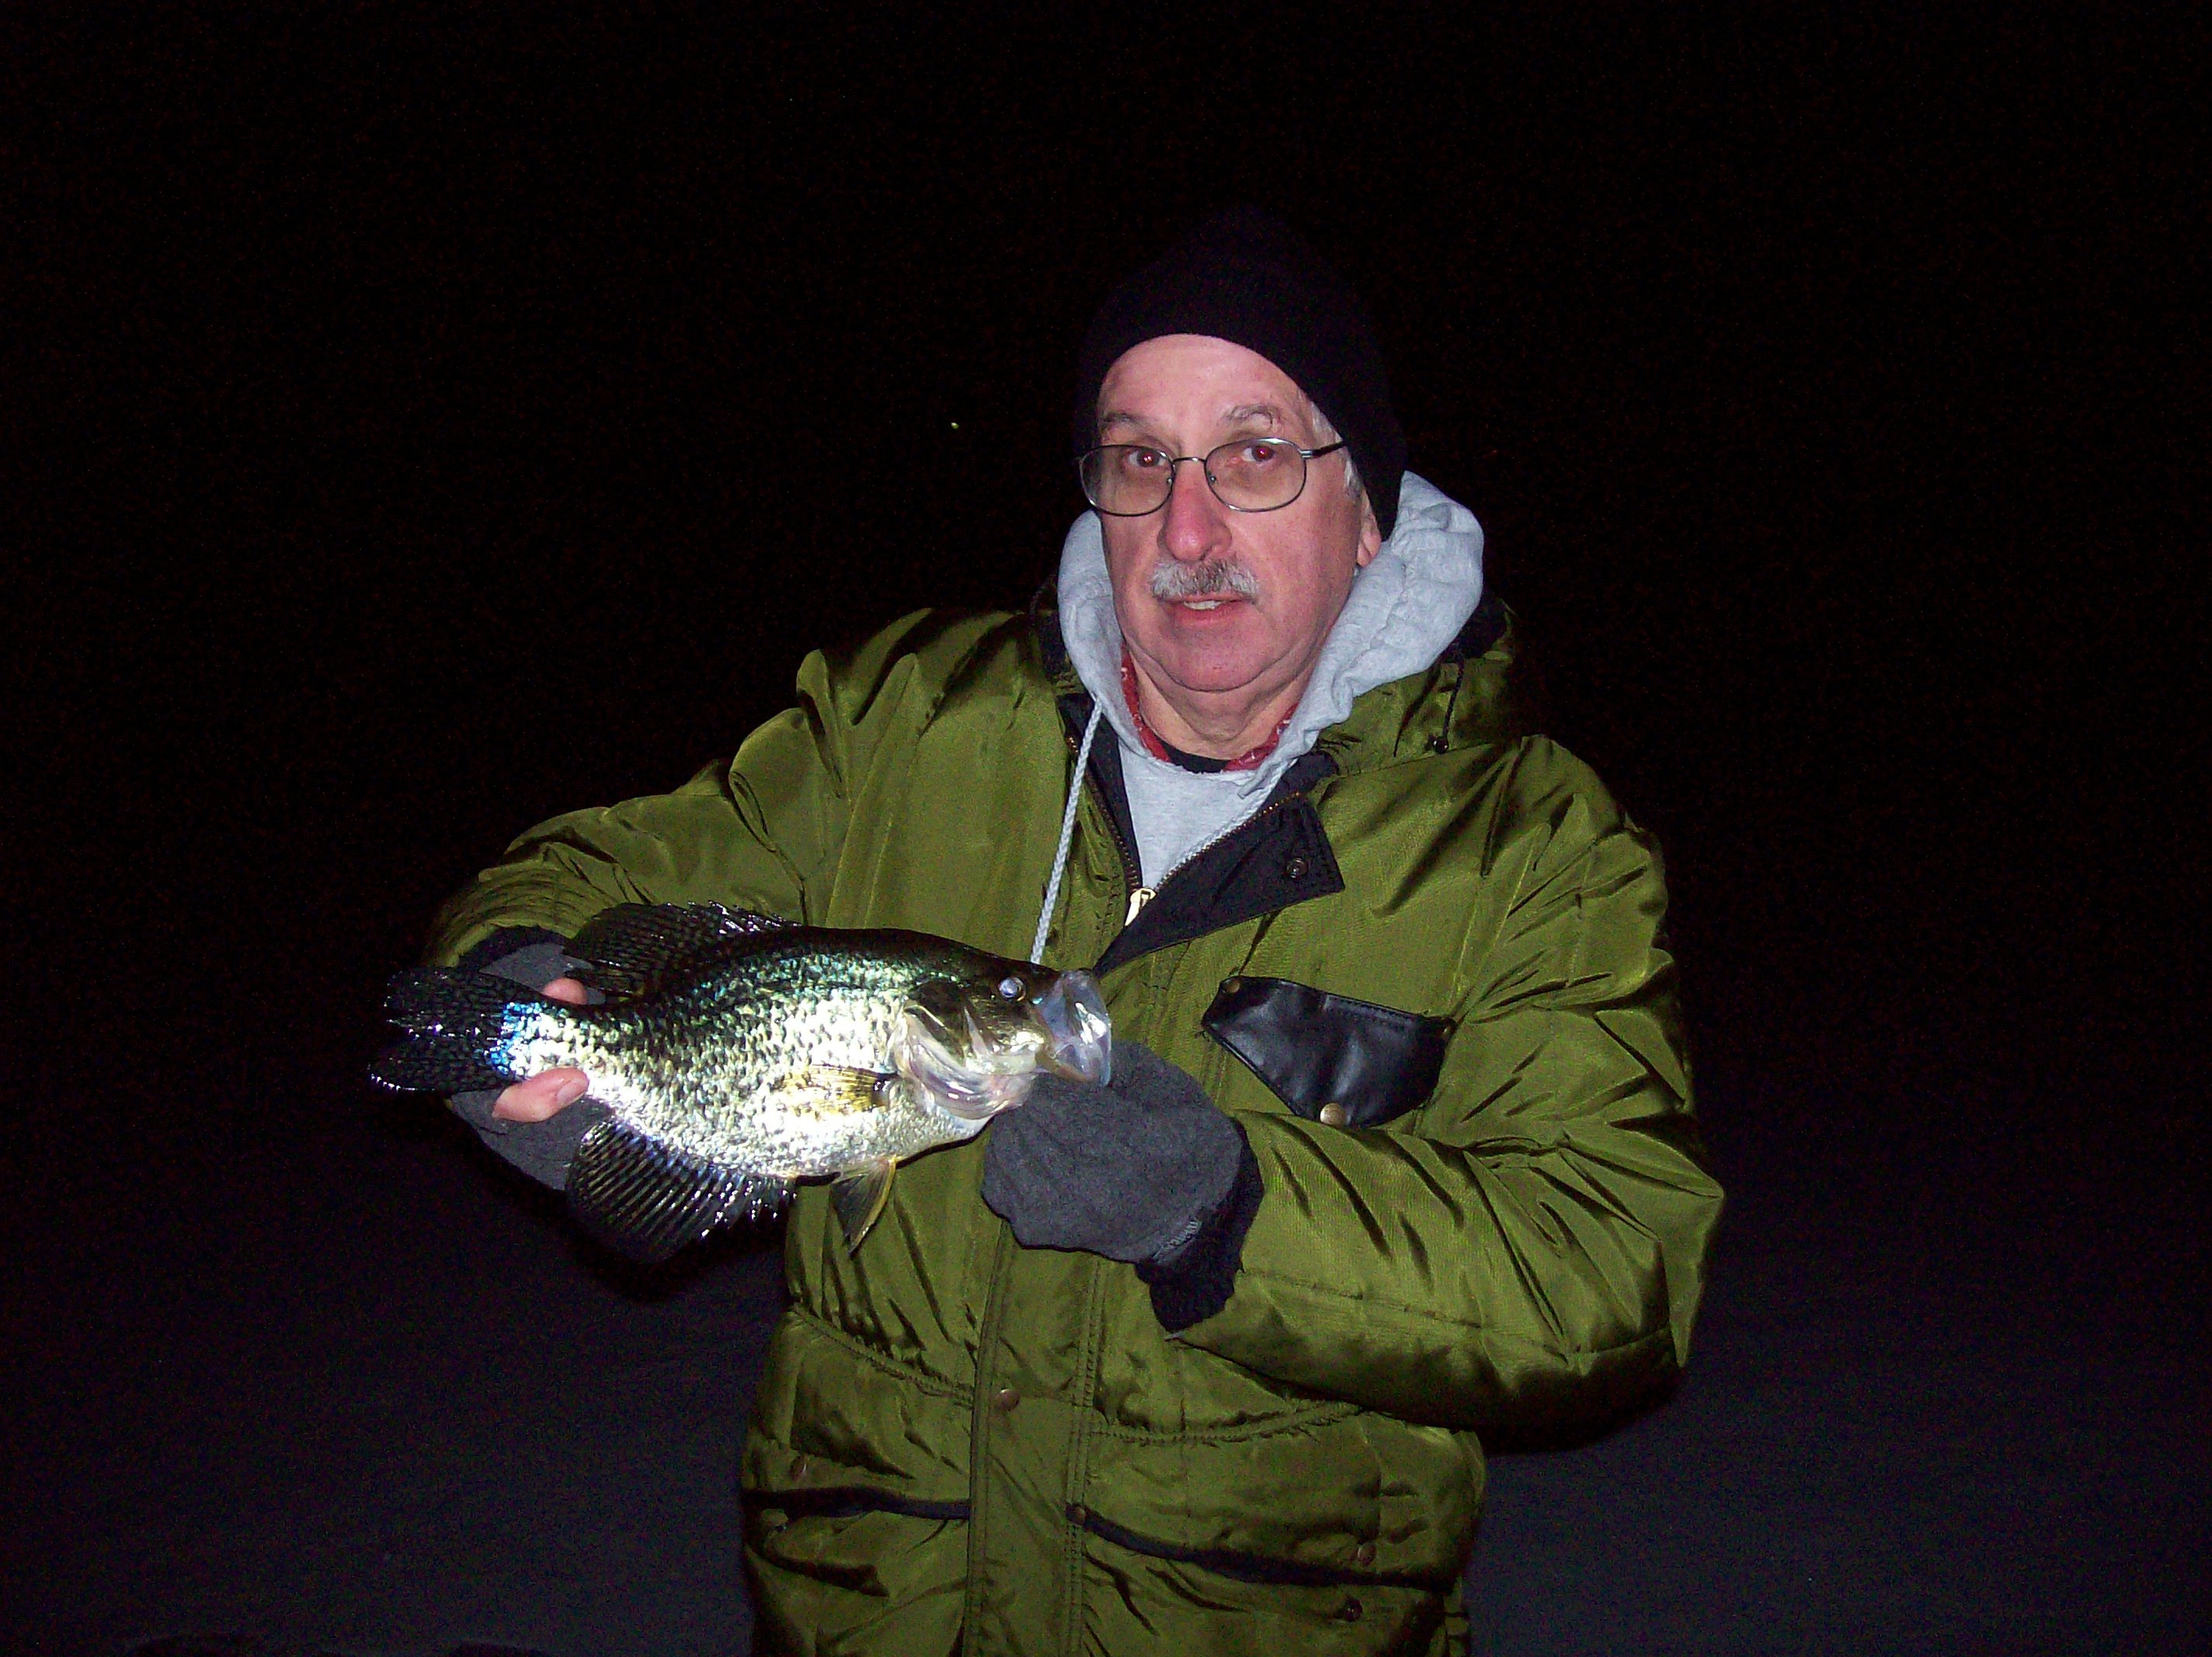 David  Hughes South Haven MI    Species: Crappie (Black or White) Date Caught: 03/06/2013 Kept /